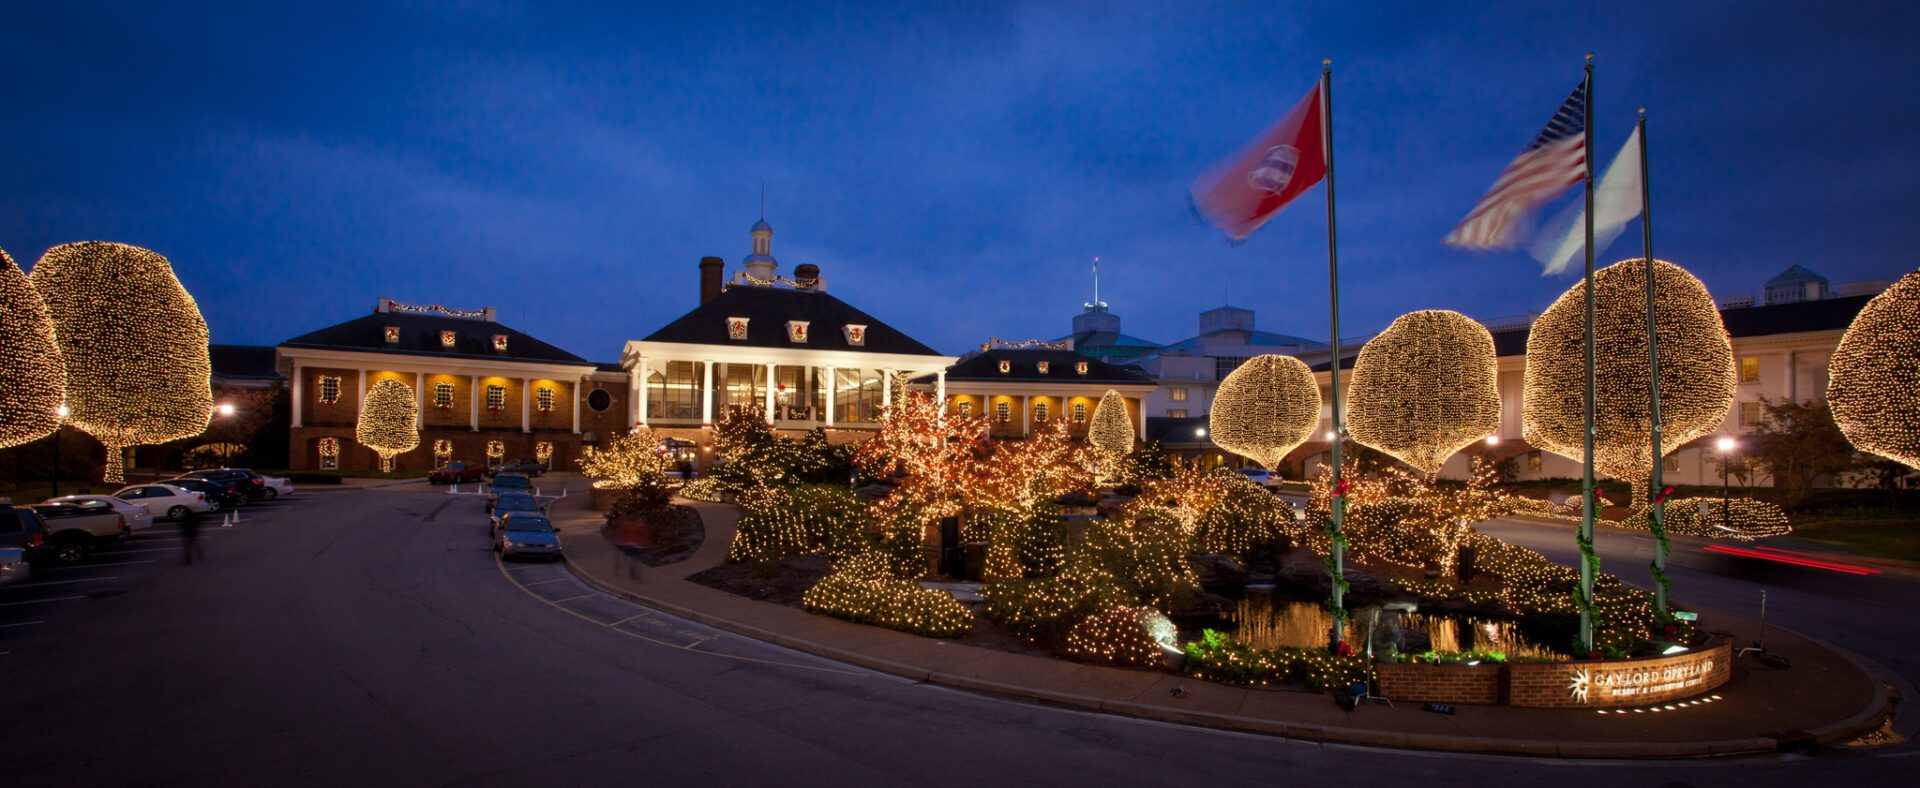 Nashville Holiday Events - A Country Christmas at Gaylord Opryland